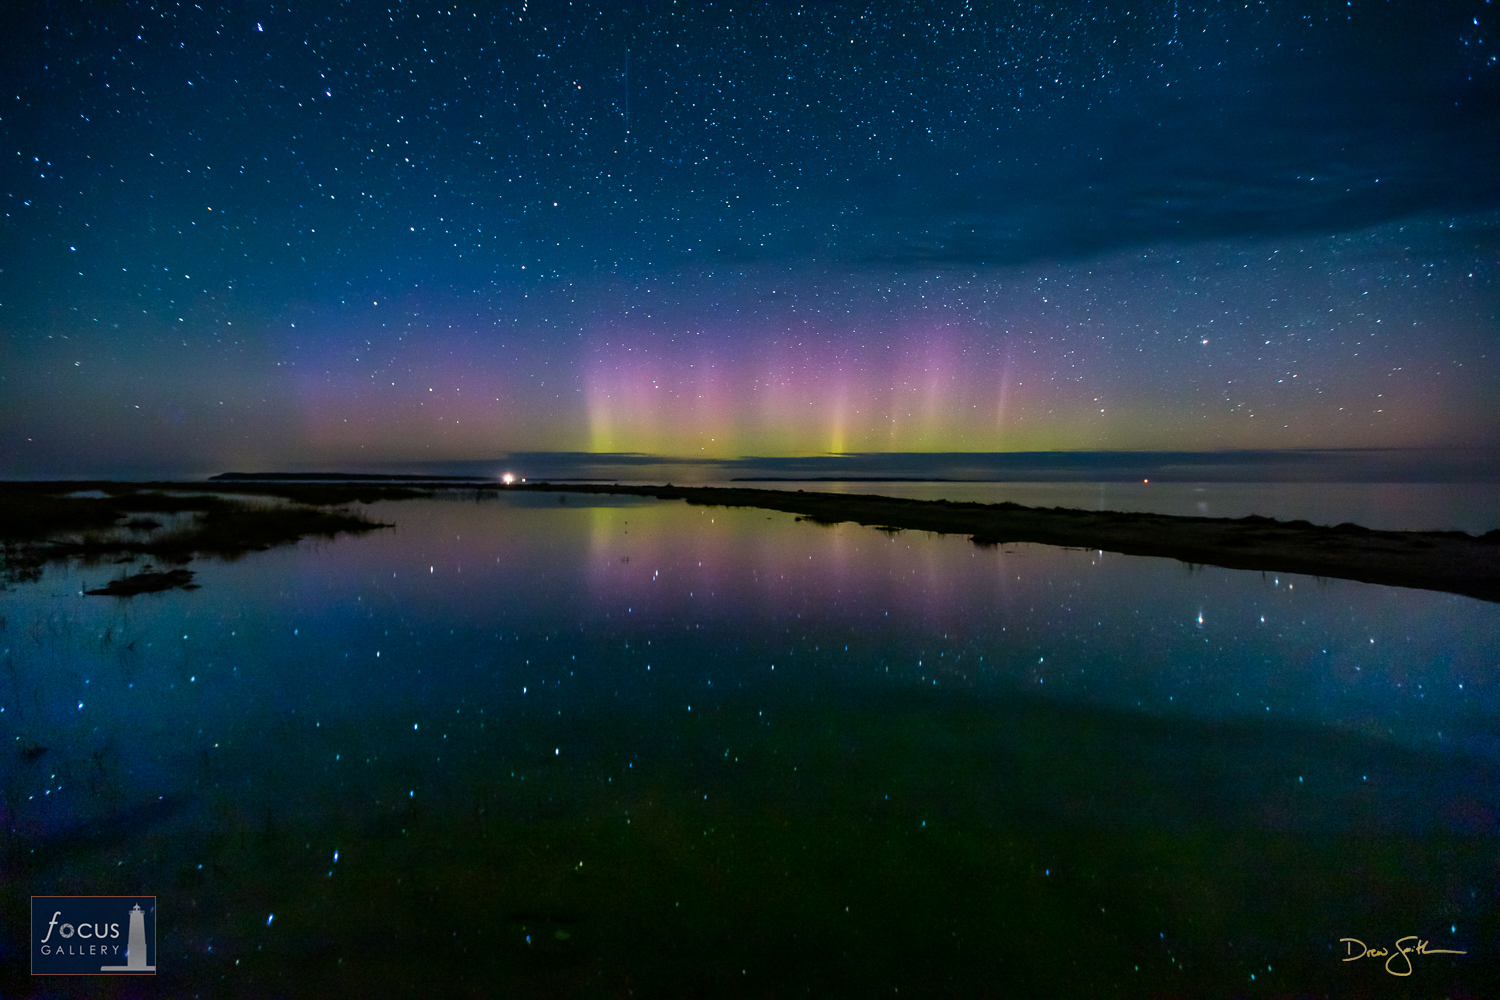 Photo © Drew Smith A sky full of stars, northern lights, the South Manitou Lighthouse, and a perfectly still lakeshore pond...